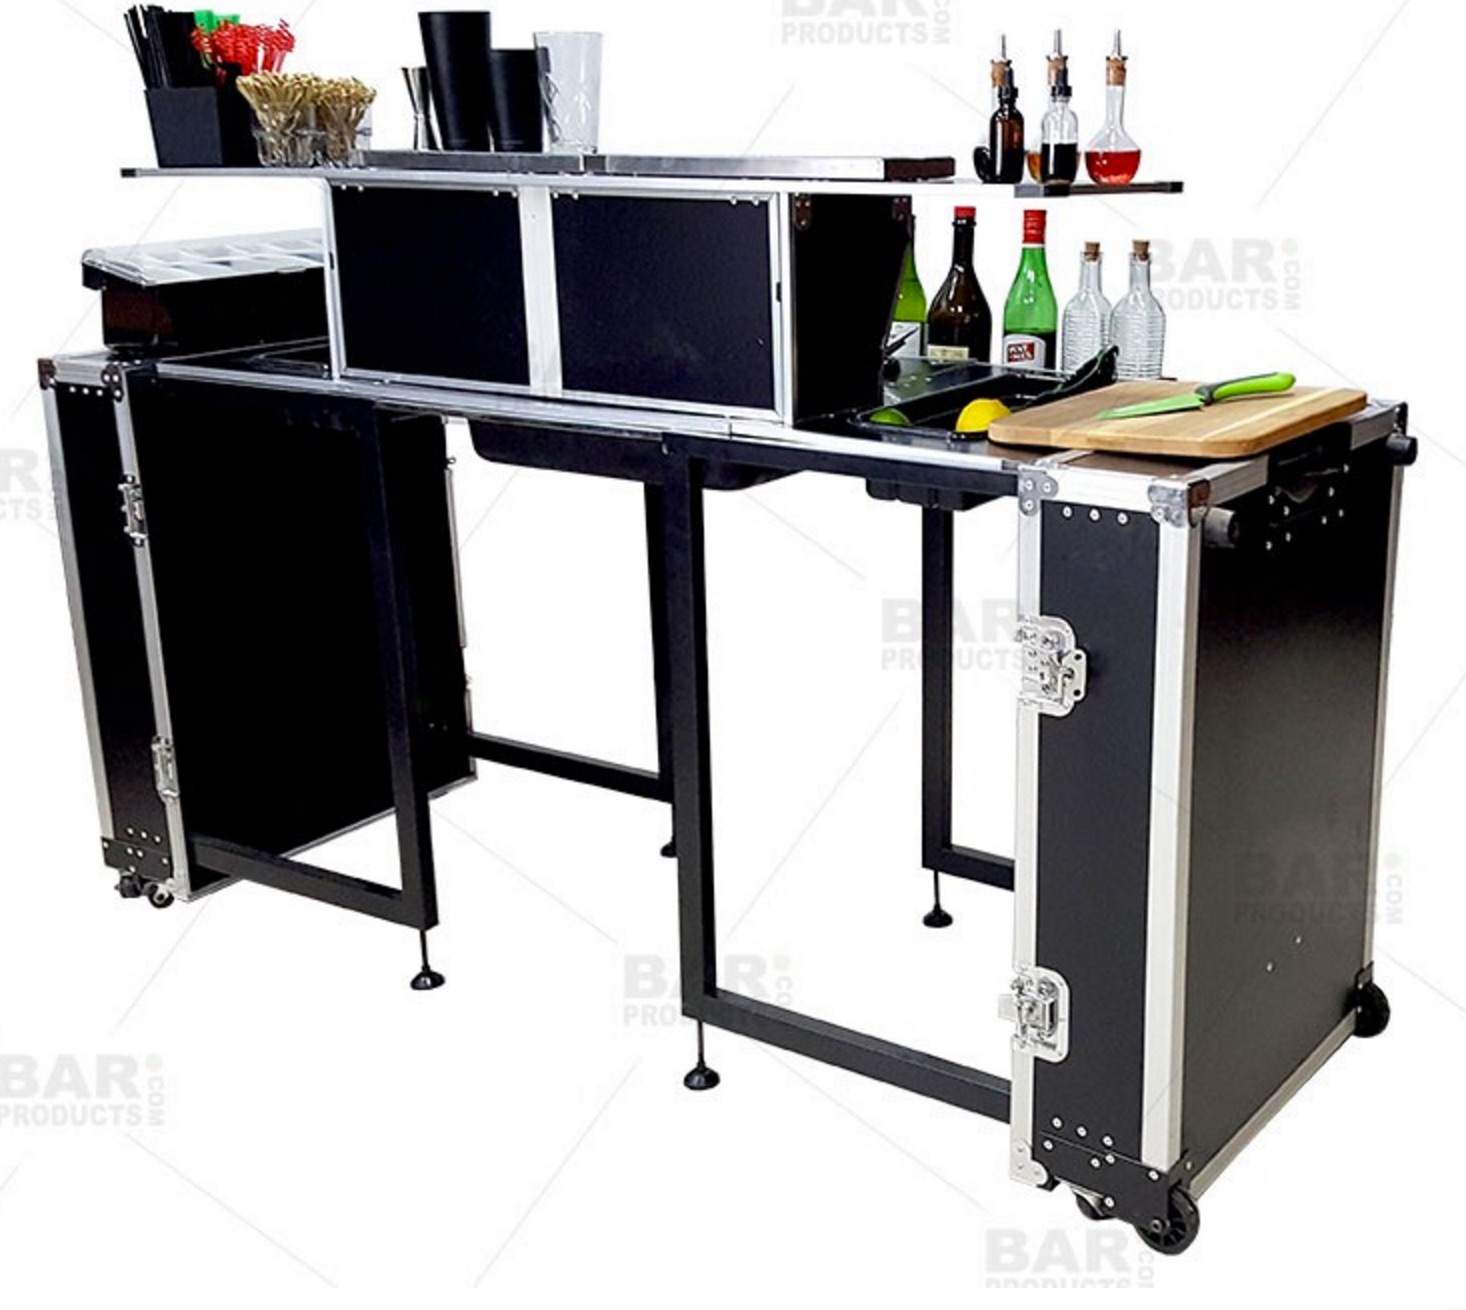 get table will depending heights height on high sitting the situation products portable switch one two bar with between and in expolinc just tables you